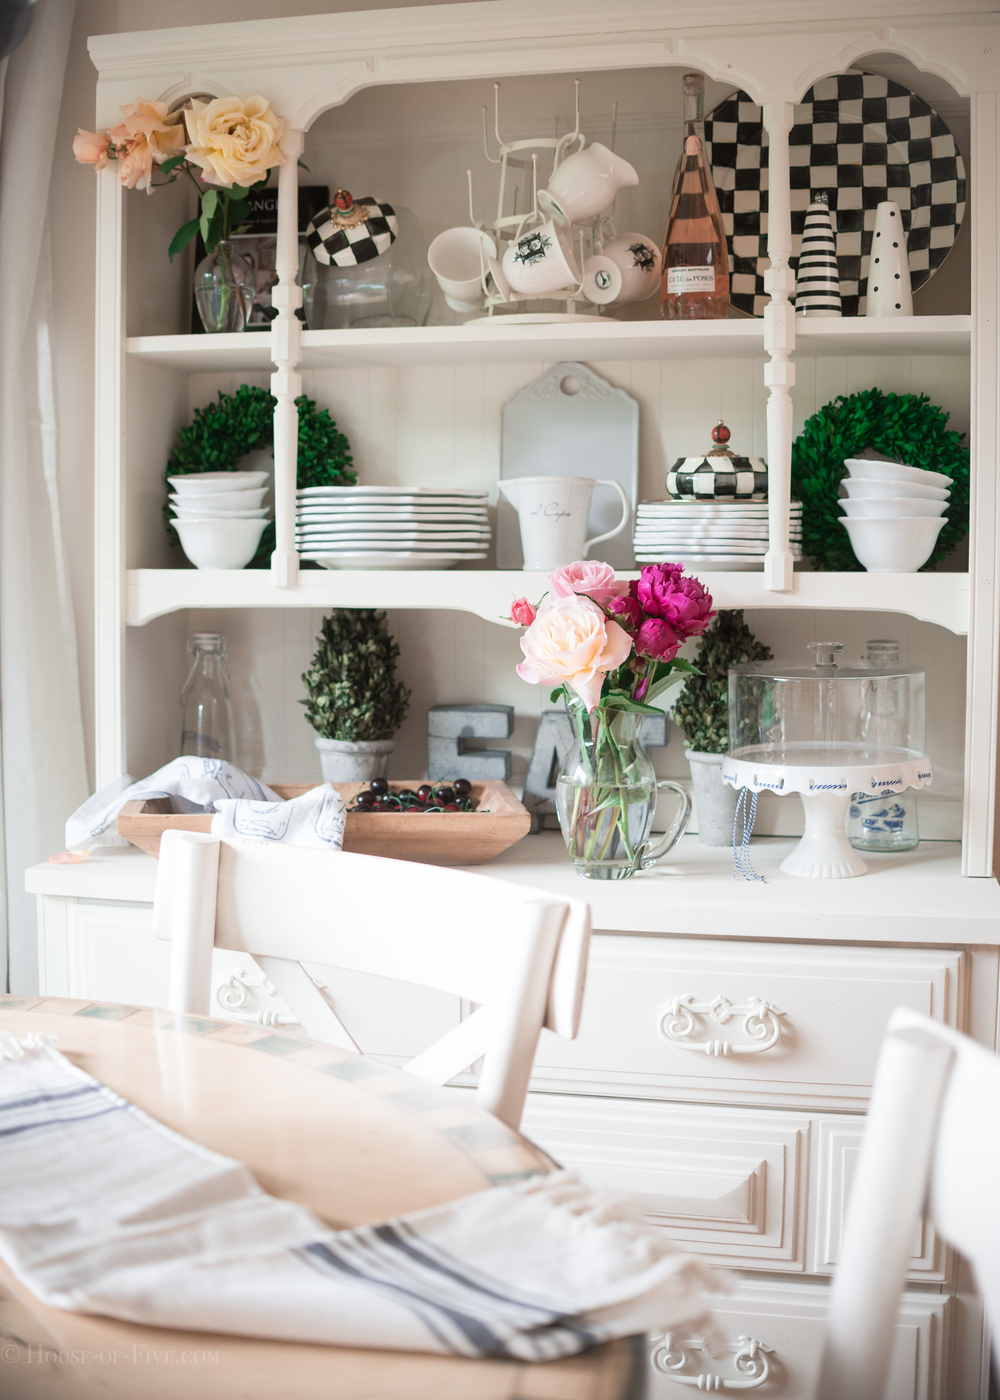 Kitchen hutch decor - House of Five Blog